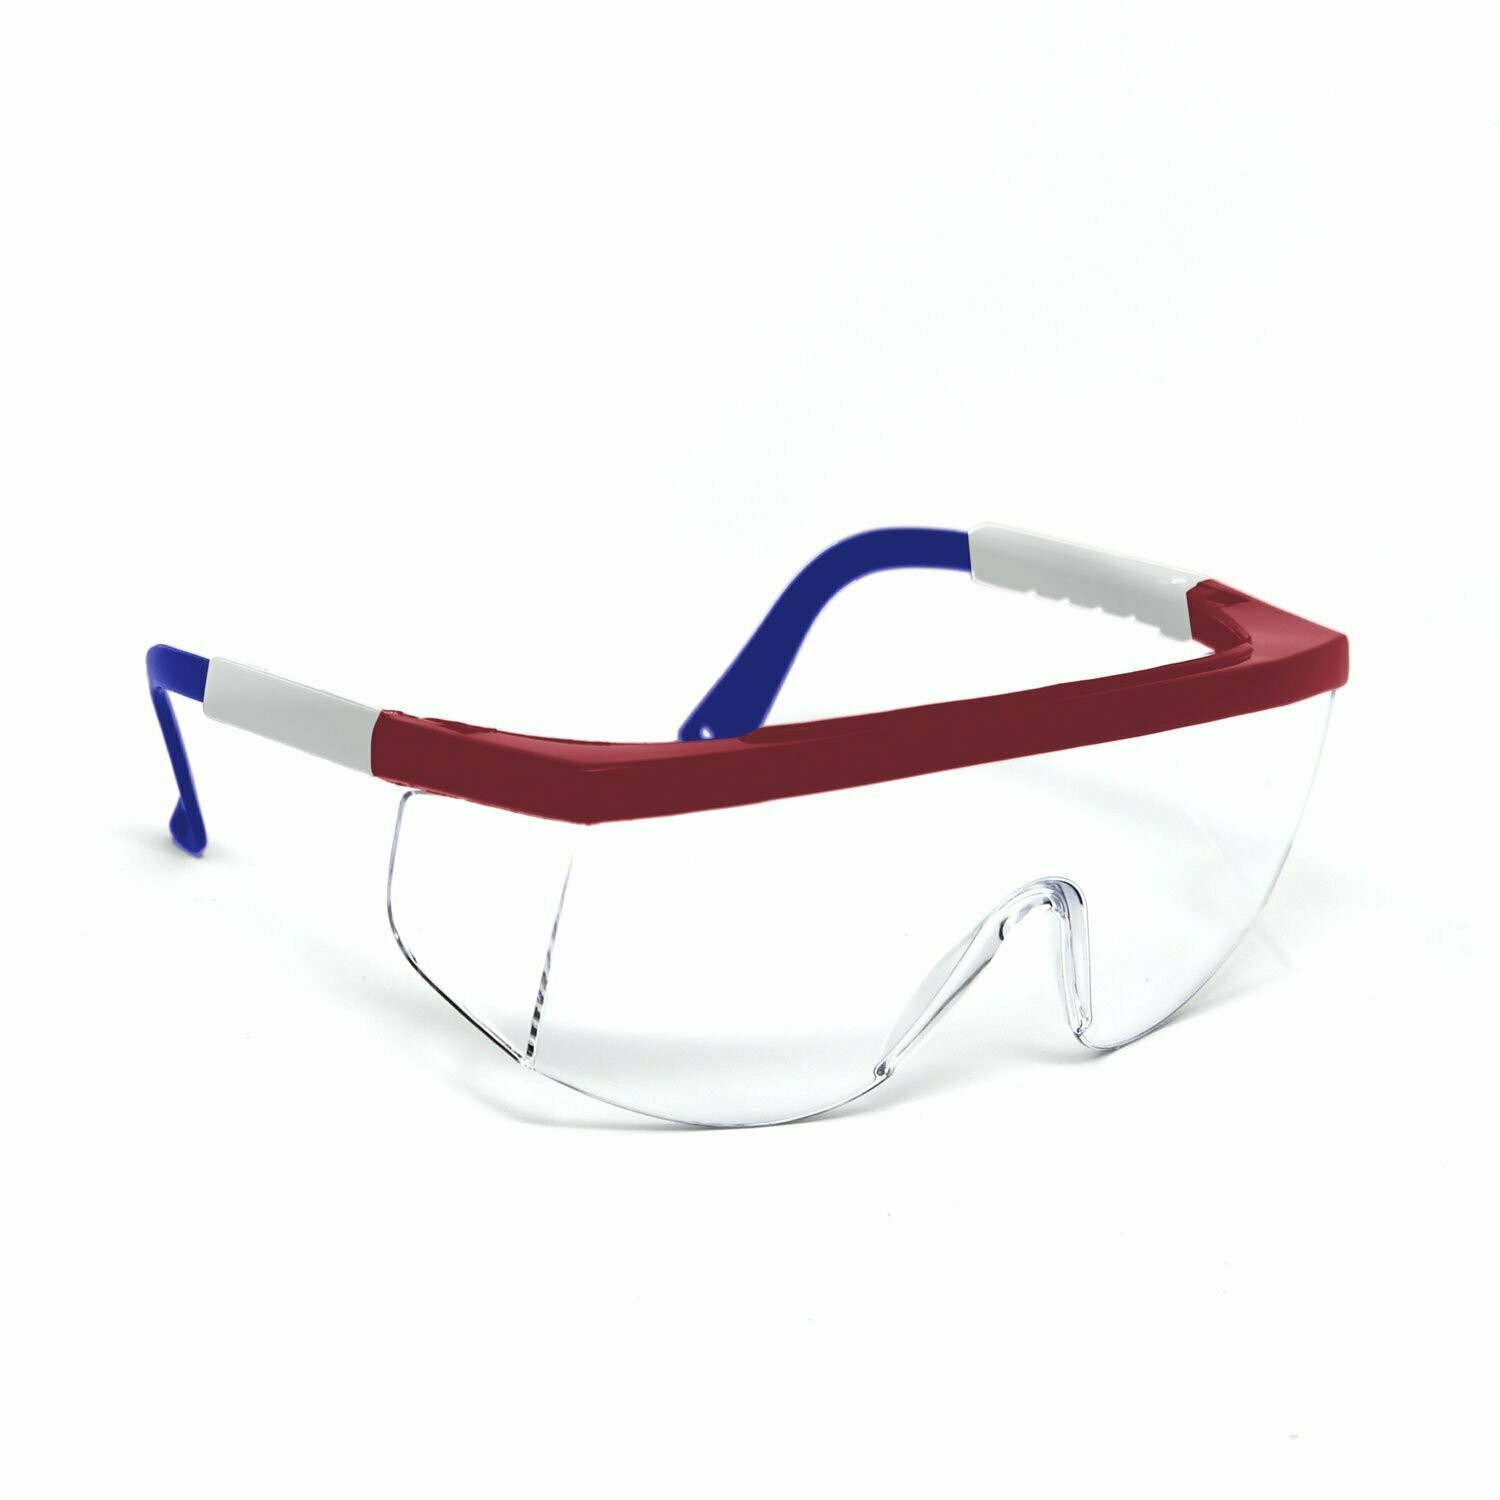 Optic Max Clear Lens With Red/White/Blue Frame